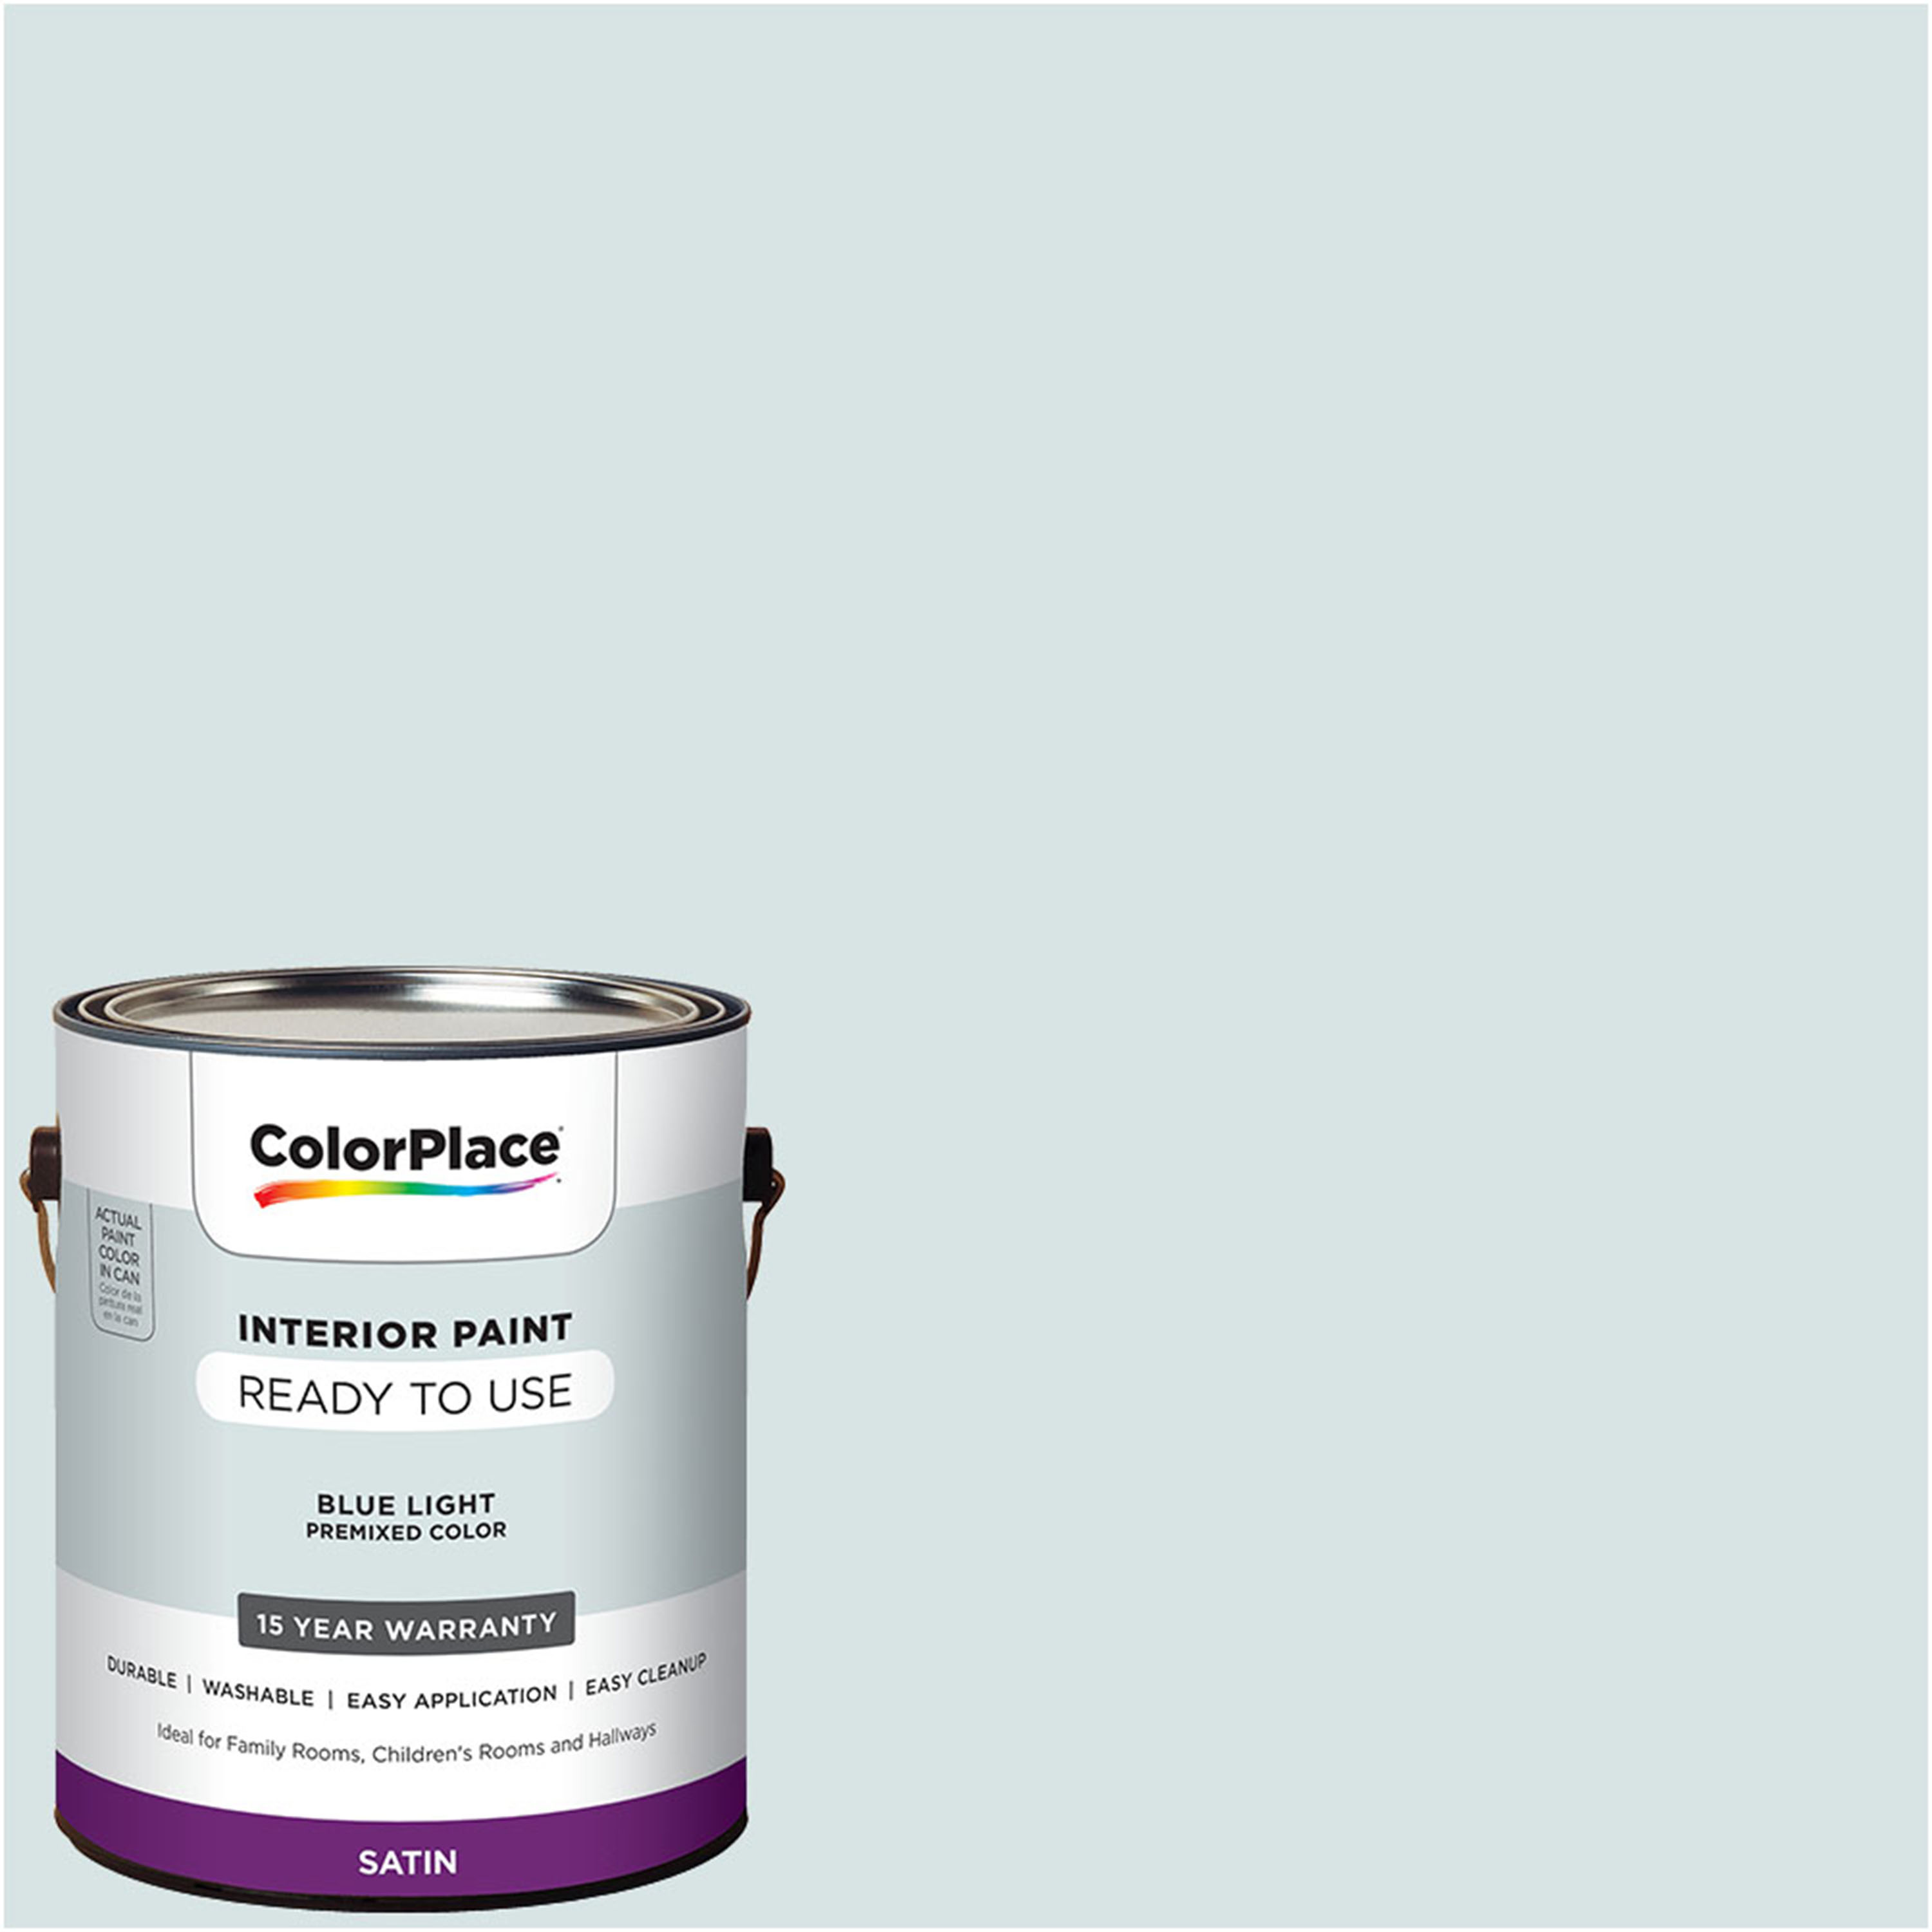 ColorPlace Pre Mixed Ready To Use, Interior Paint, Blue Light, Satin Finish, 1 Gallon by PPG Architectural Coating